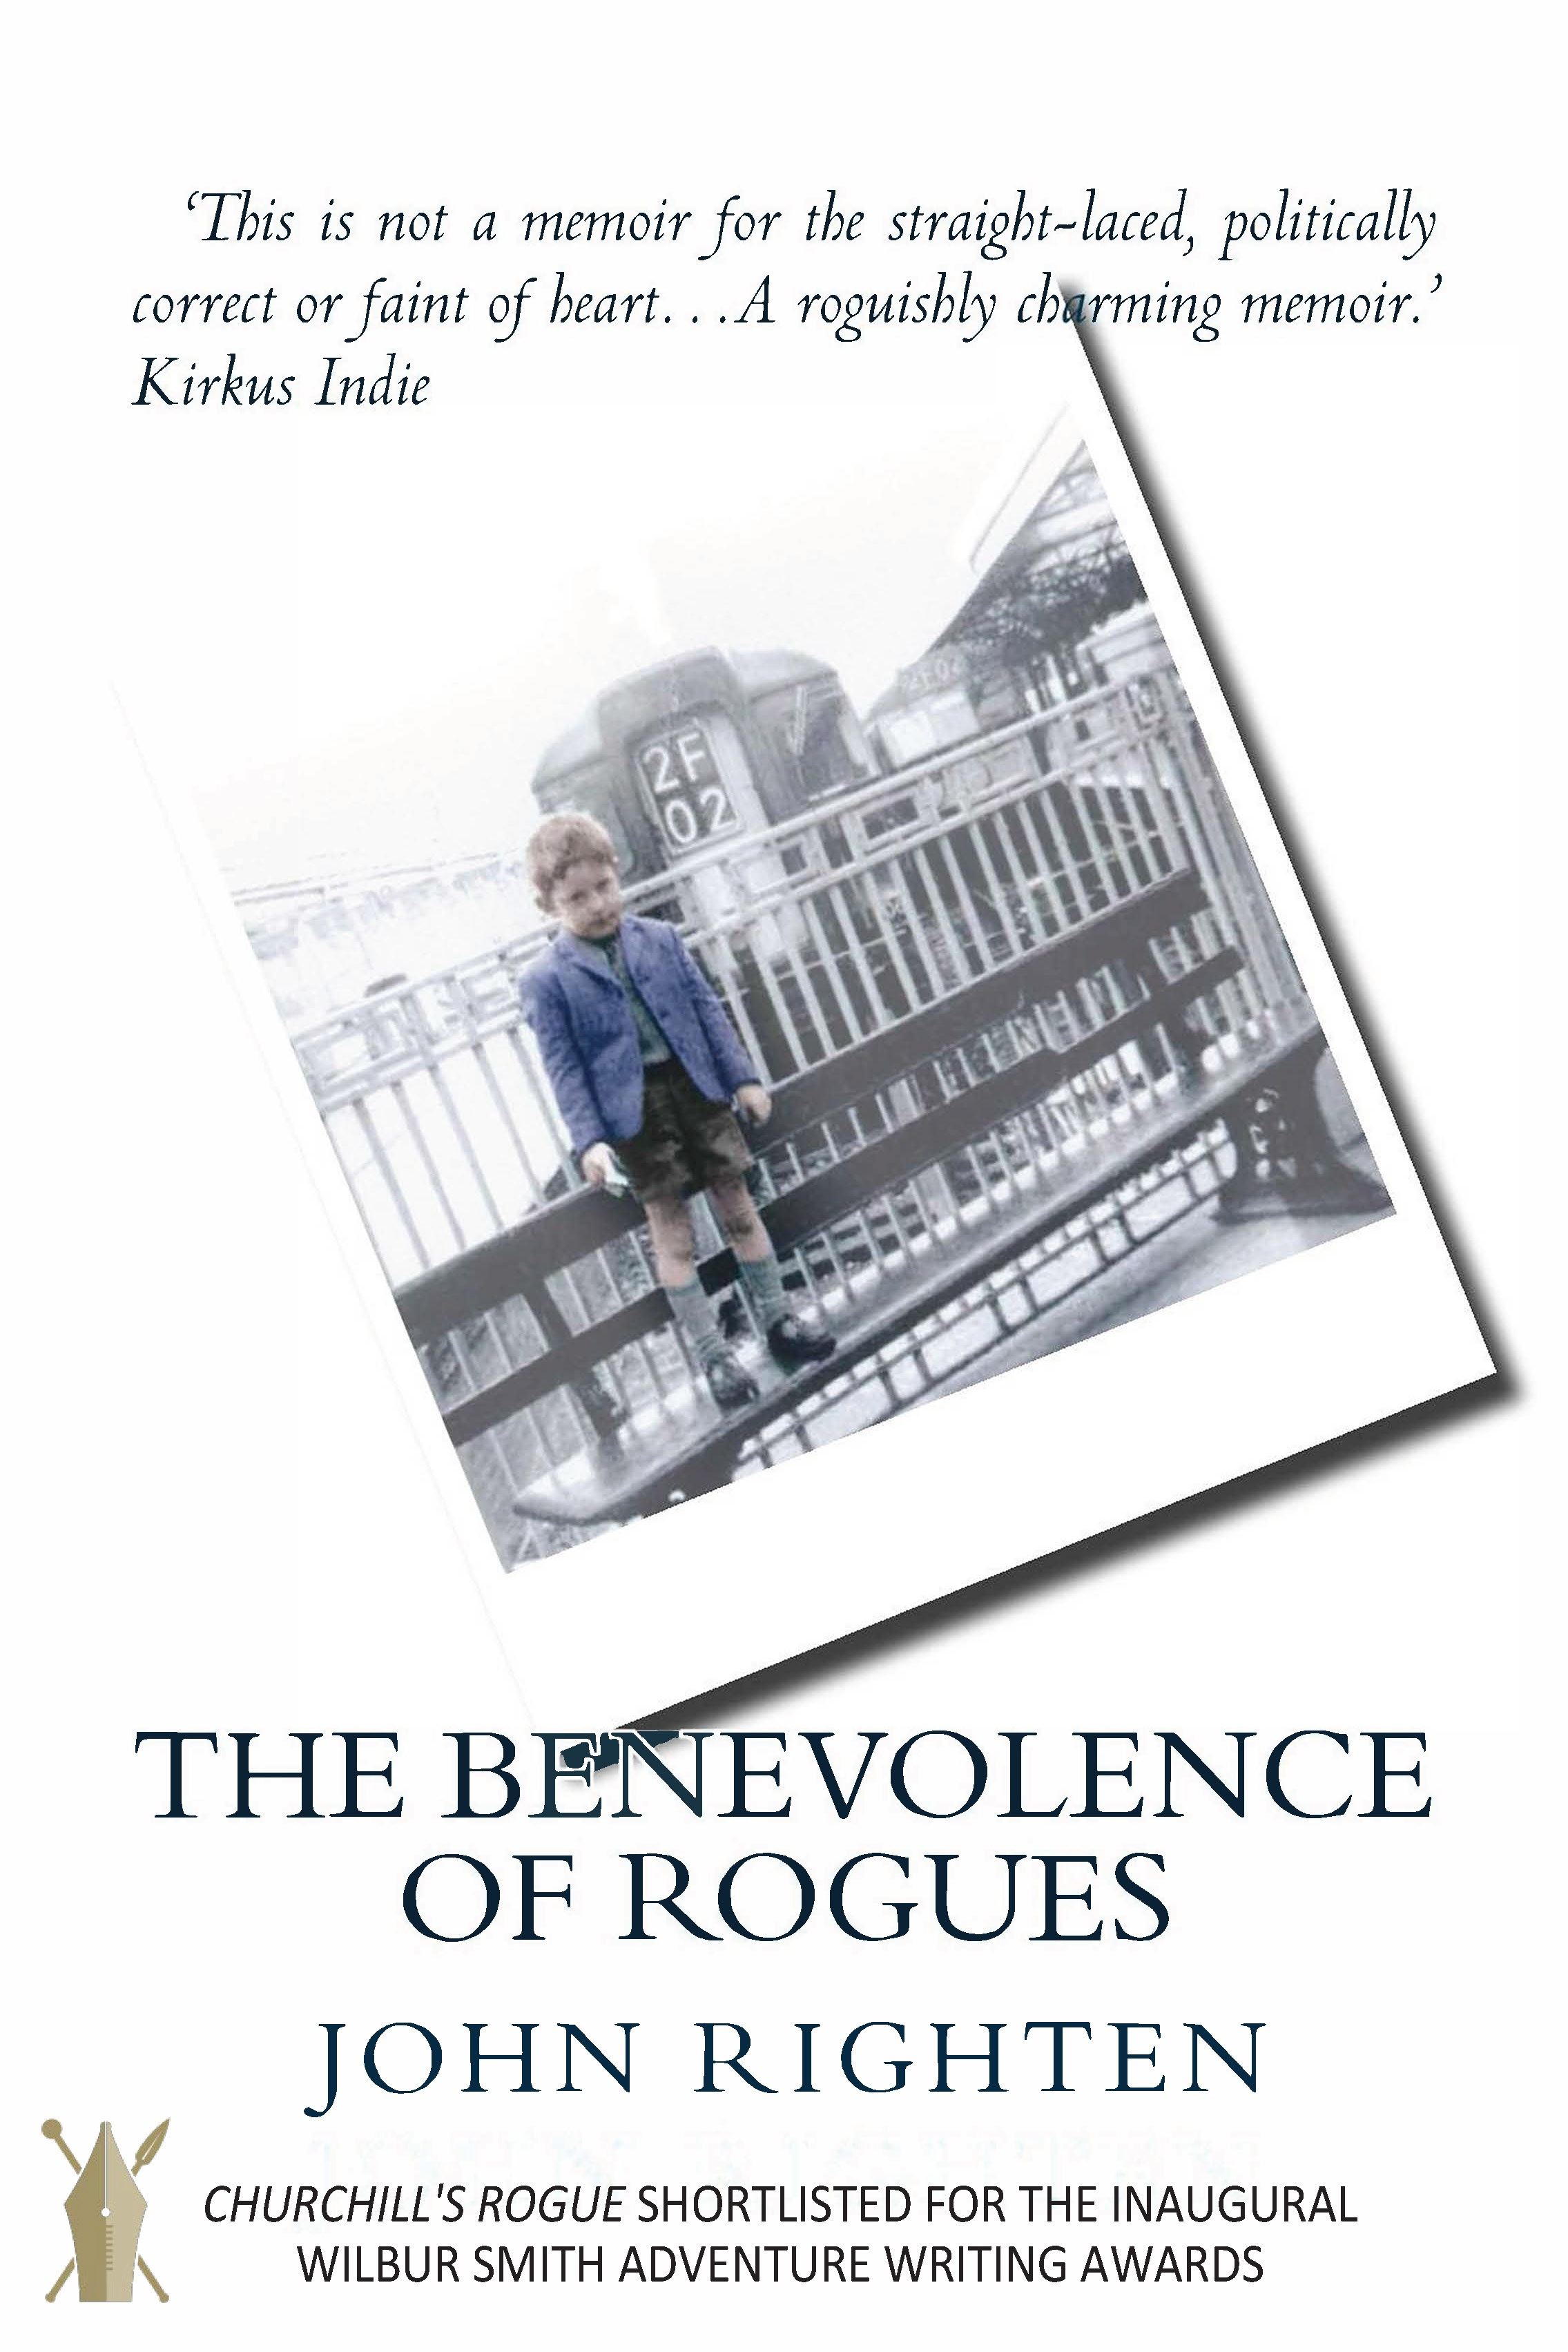 The Benevolence of Rogues